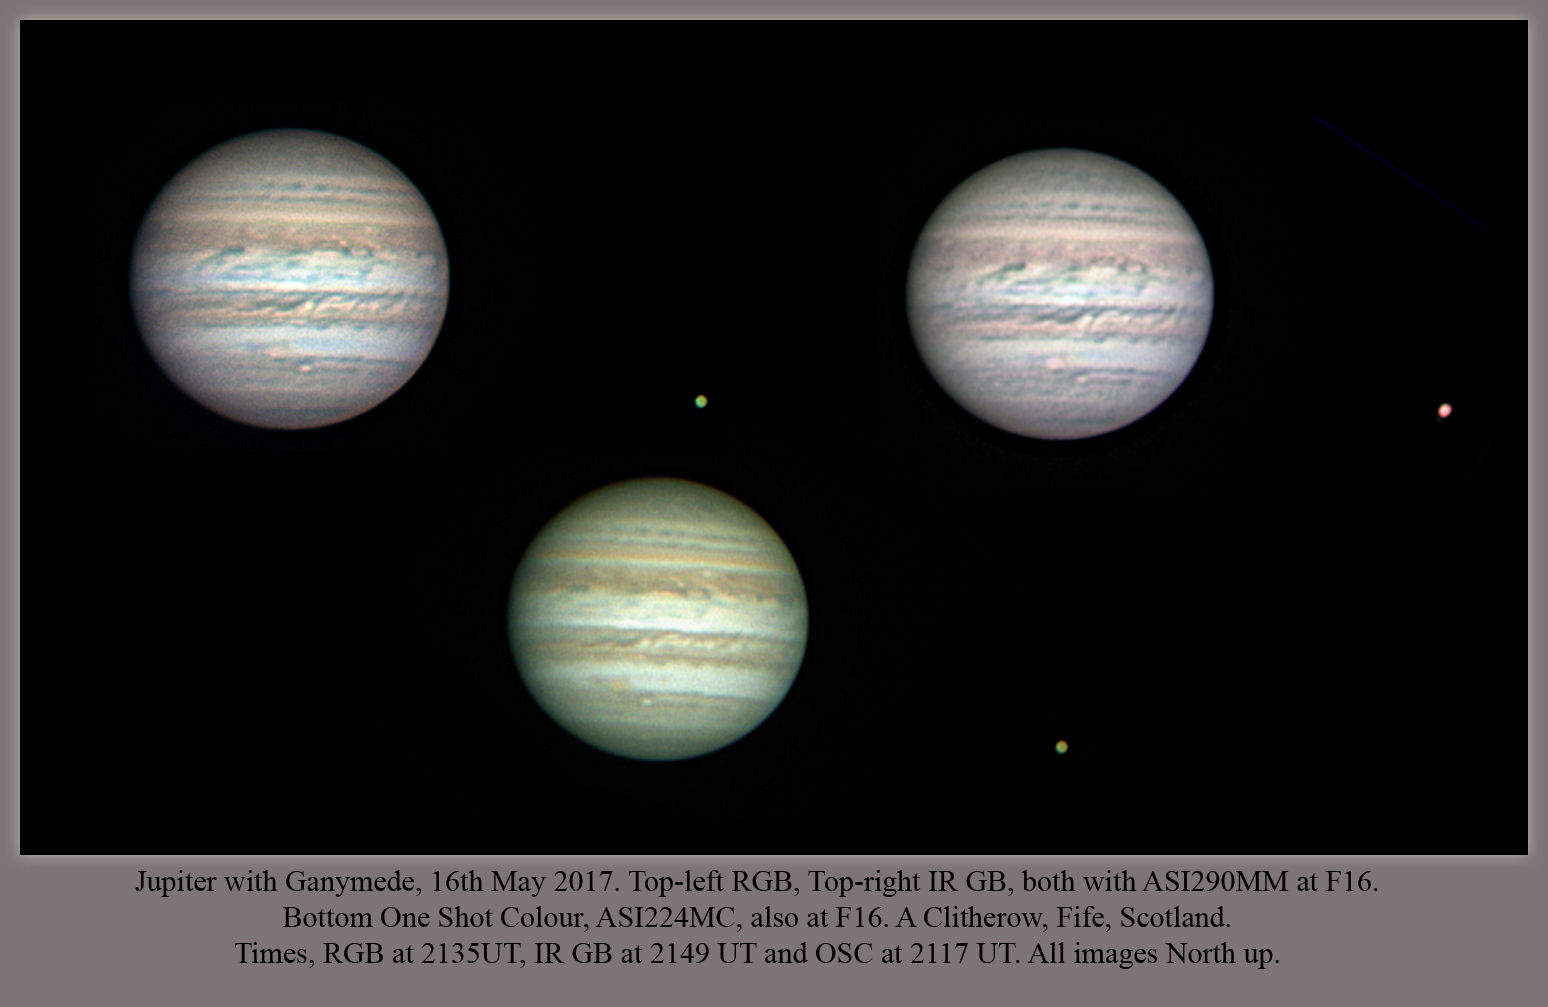 Jupiter collage by Alan Clitherow 16th may 2017